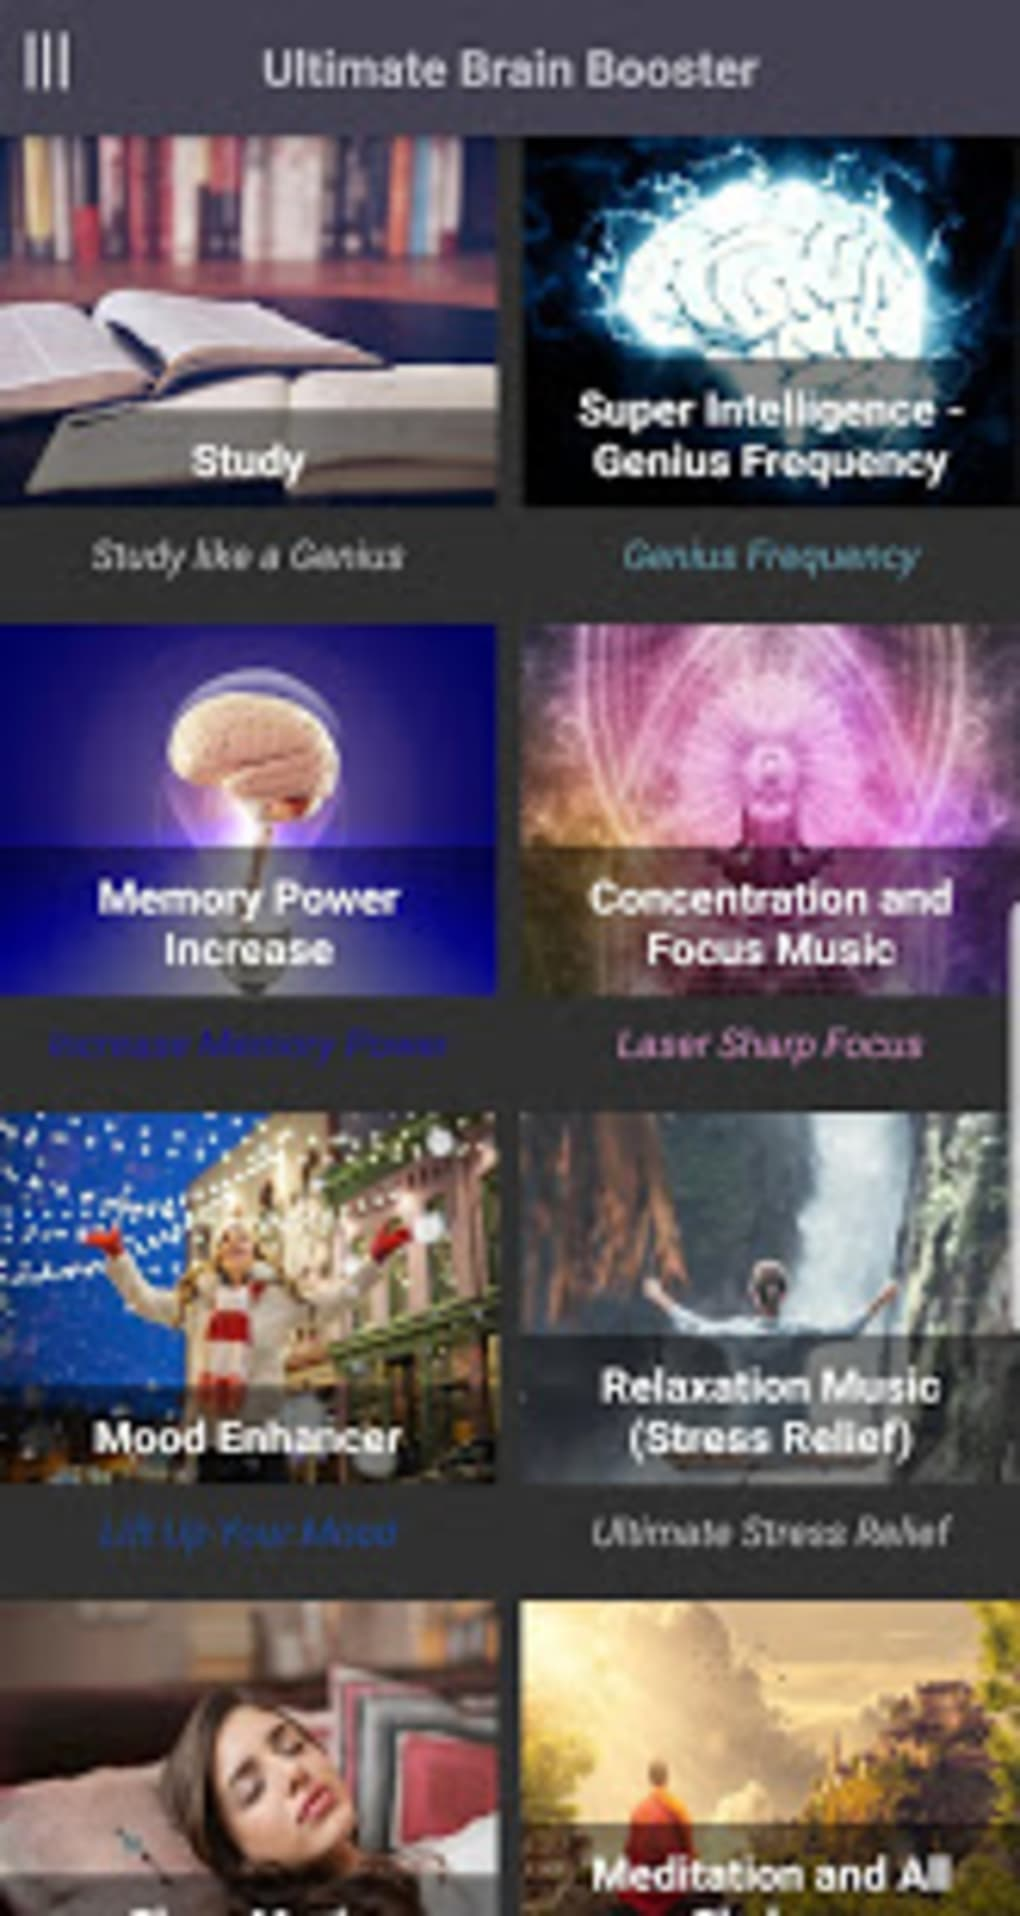 Ultimate Brain Booster - Binaural Beats for Android - Download